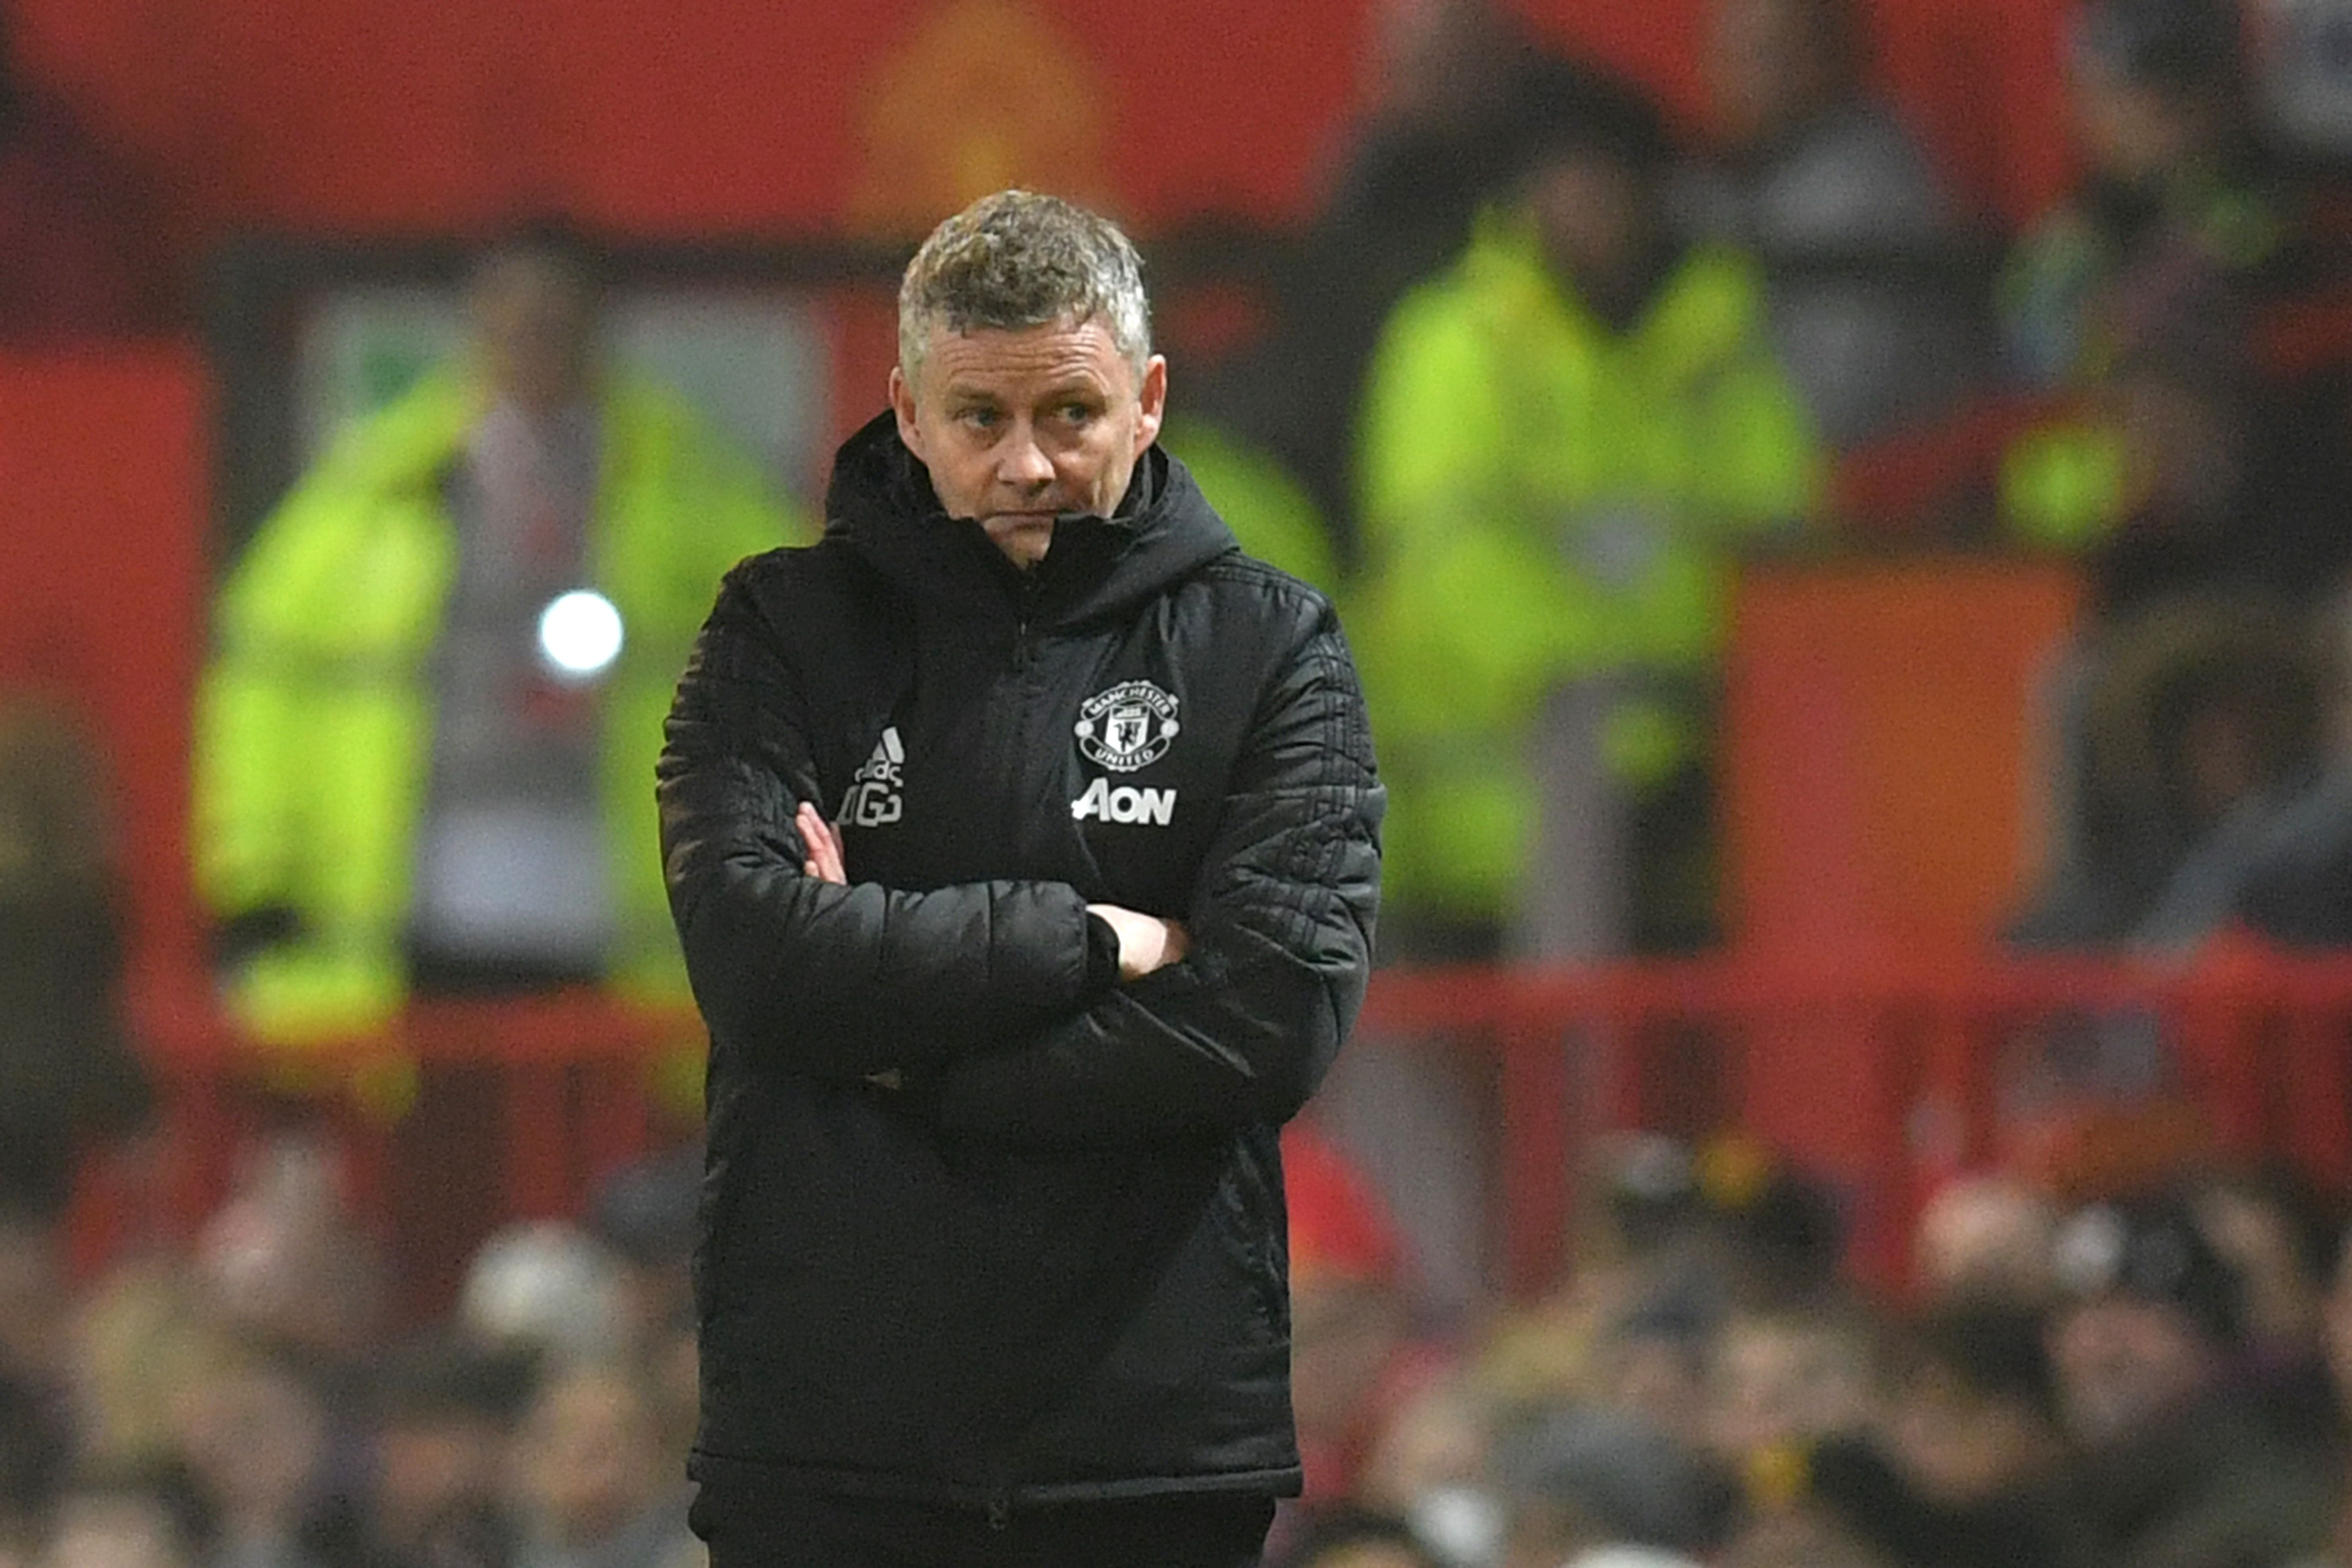 Manchester United 0-2 Burnley: Scathing assessment of 'mess from top to bottom' Red Devils by journalist Martin Lipton